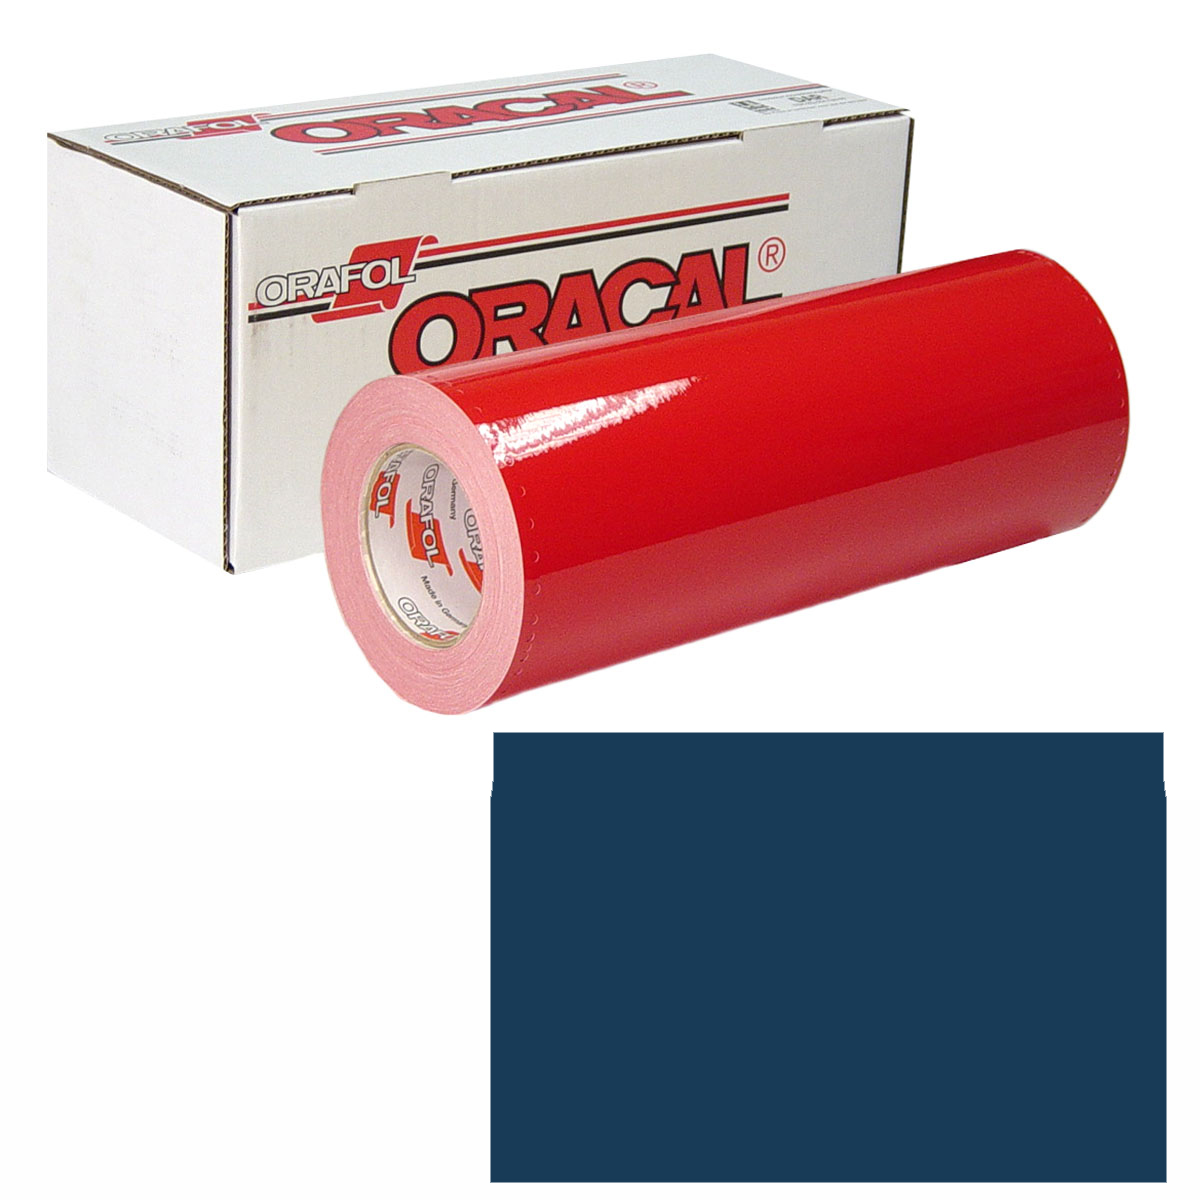 ORACAL 951M 30In X 10Yd 189 Midnight Met